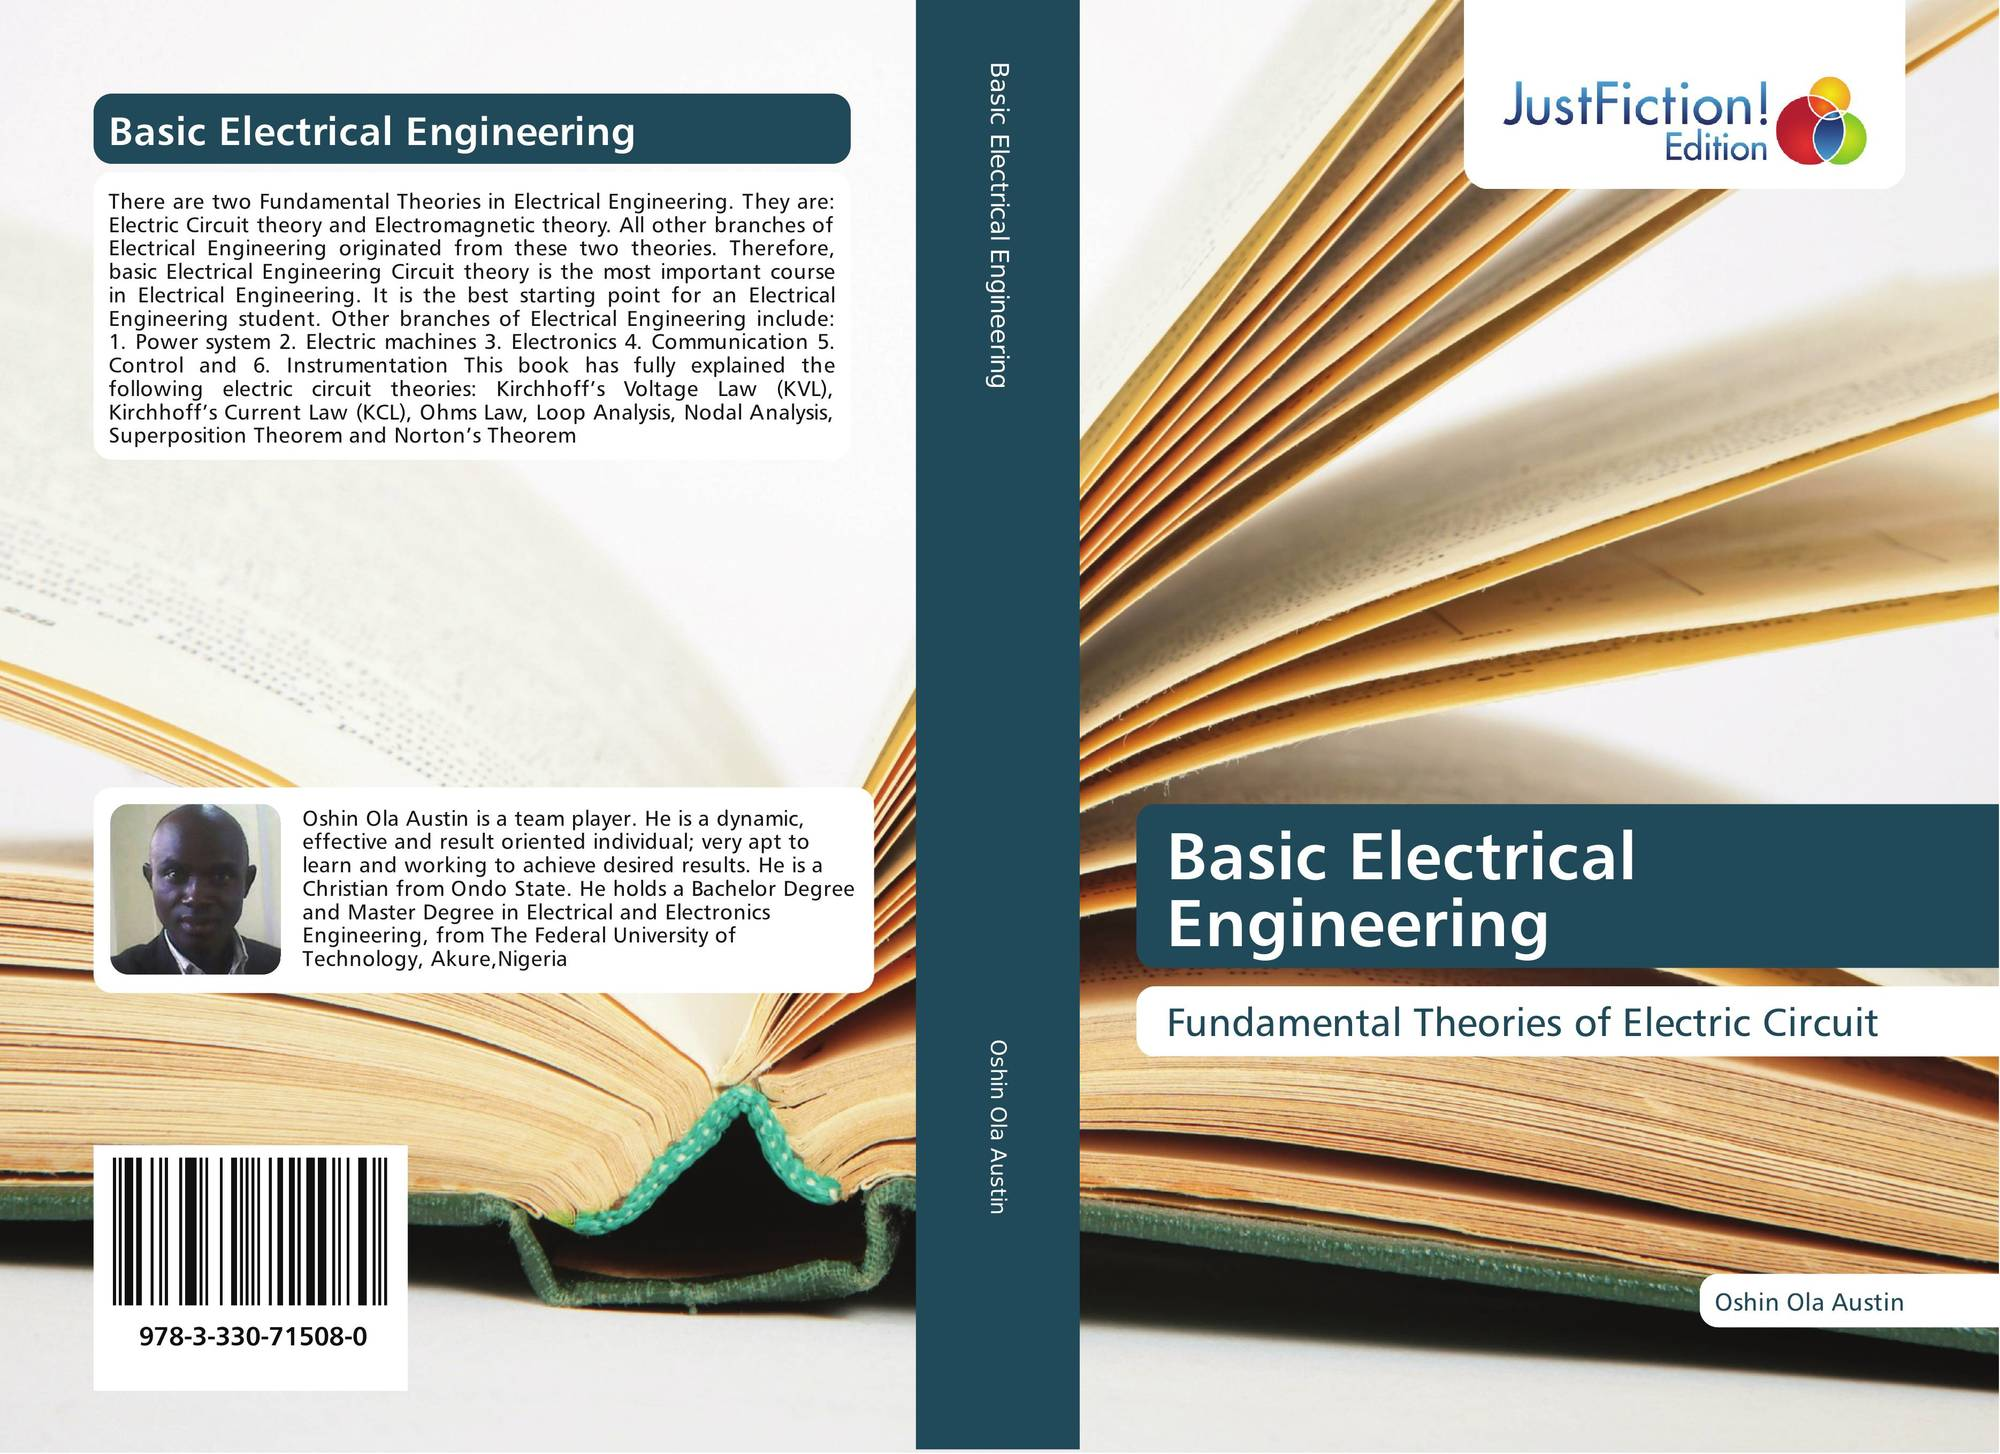 Basic Electrical Engineering 978 3 330 71508 0 3330715081 For Electric Circuits Learn Bookcover Of 9783330715080